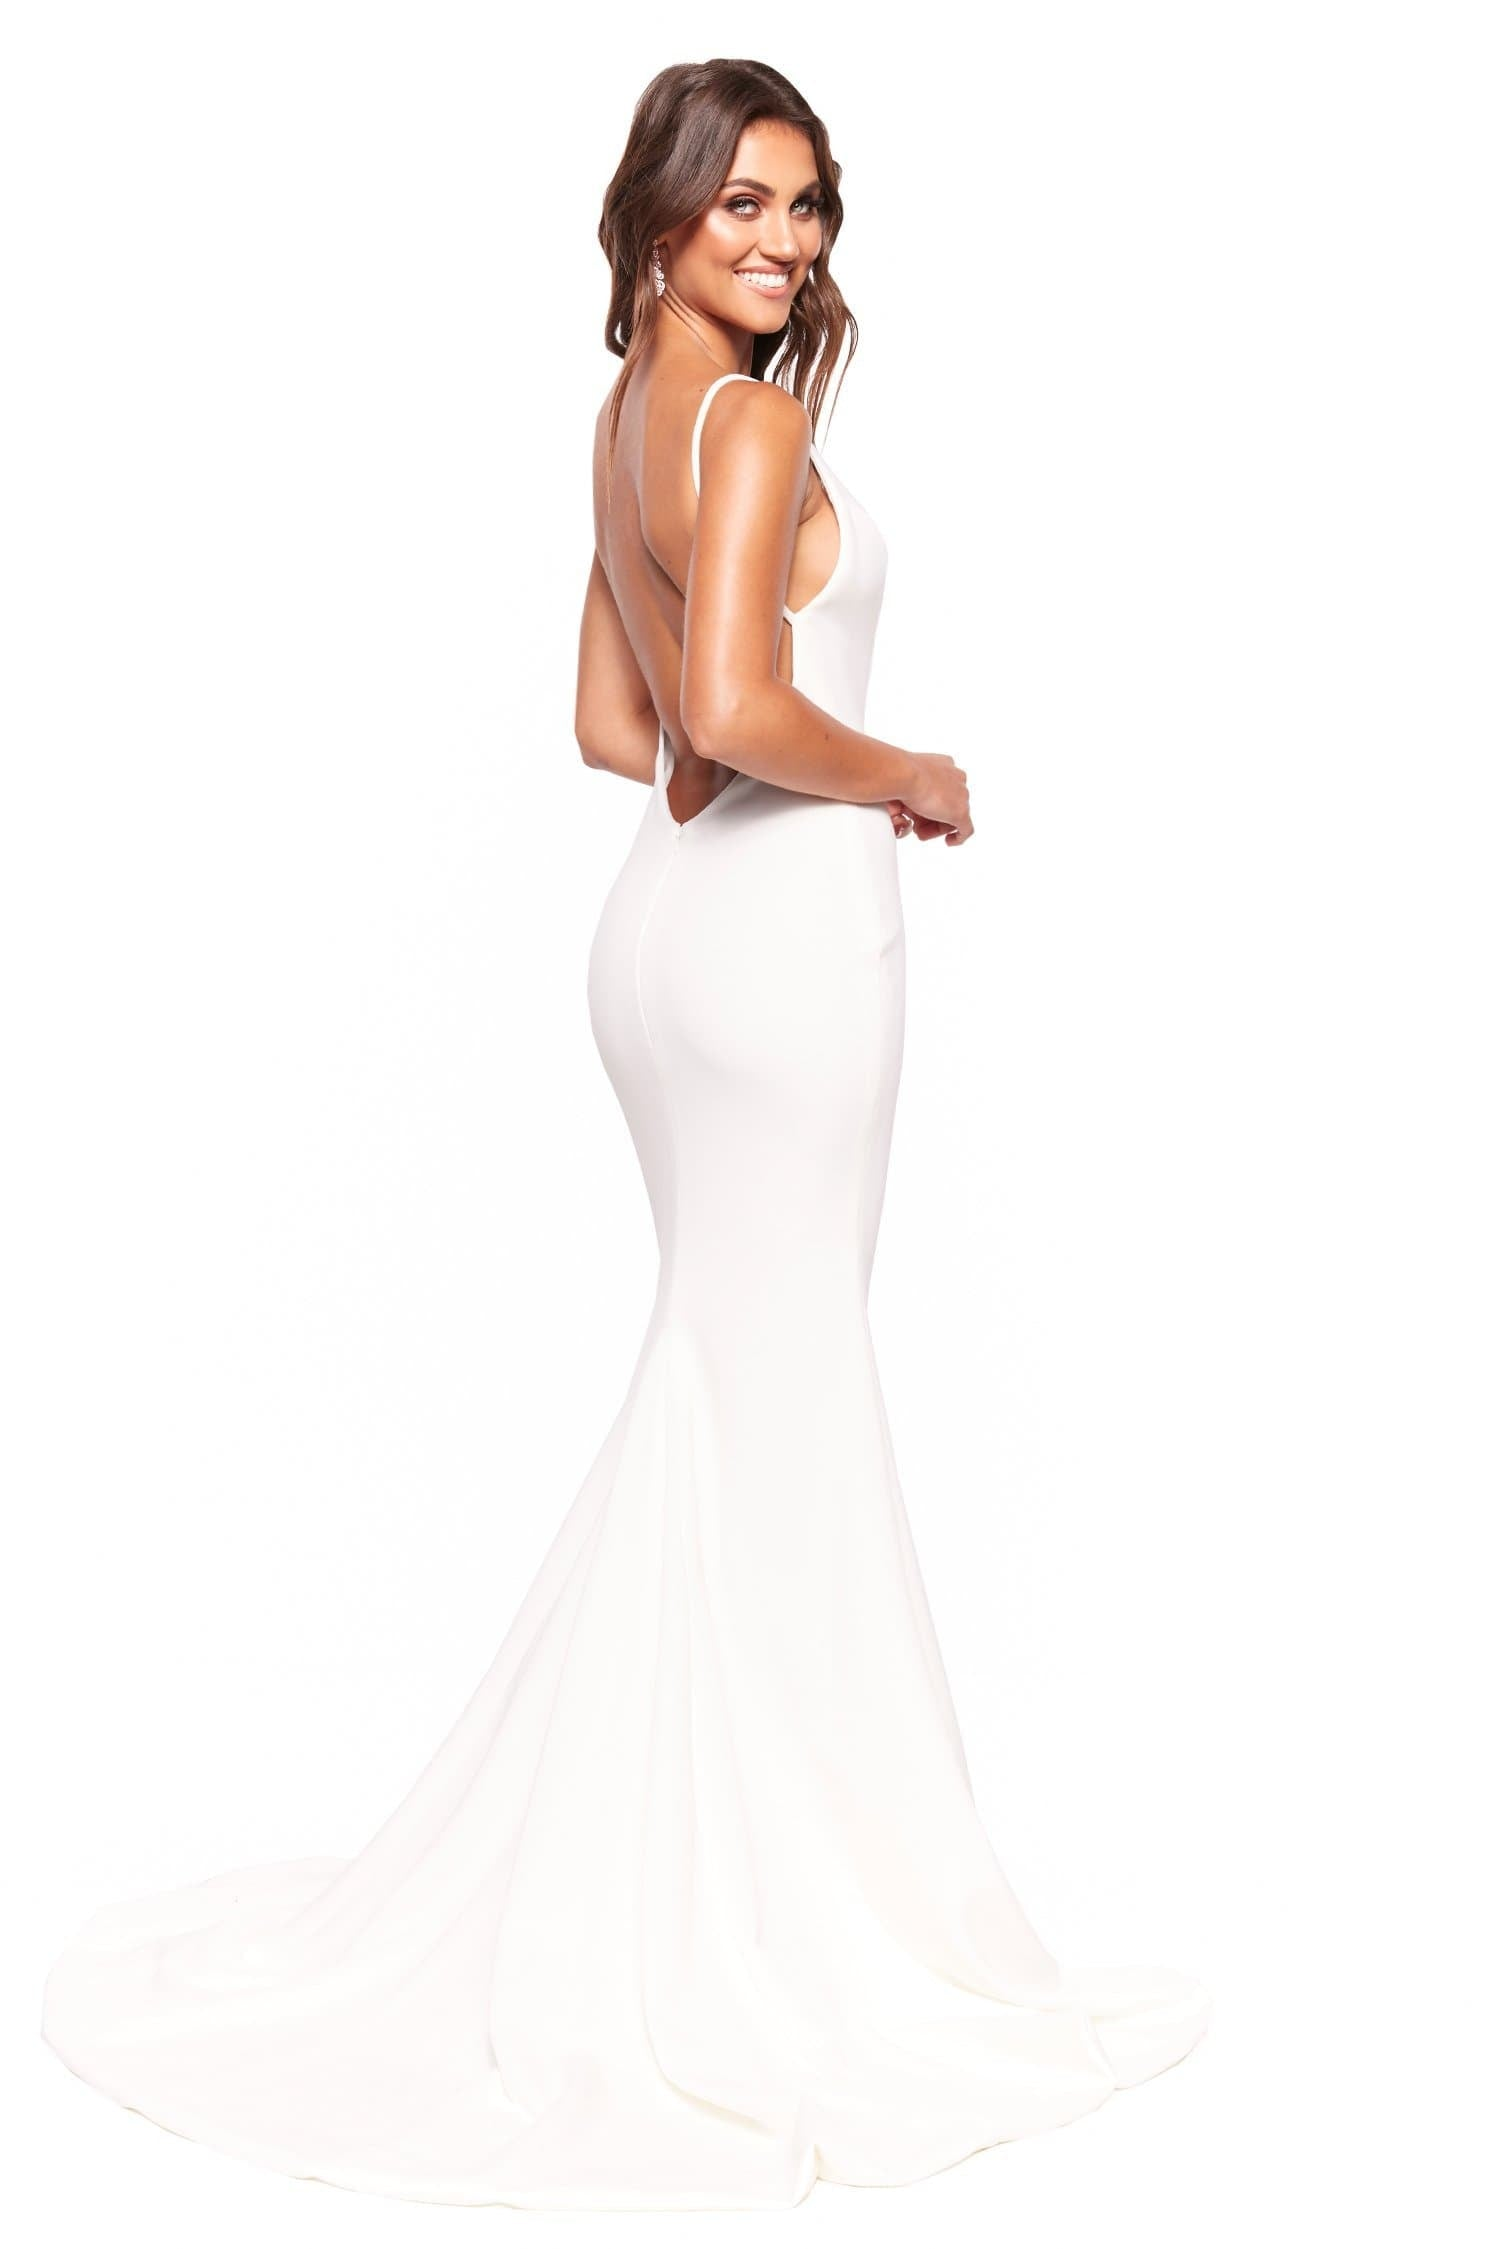 A&N Luxe Jada - White Plunge Neck Low Back Mermaid Ponti Gown